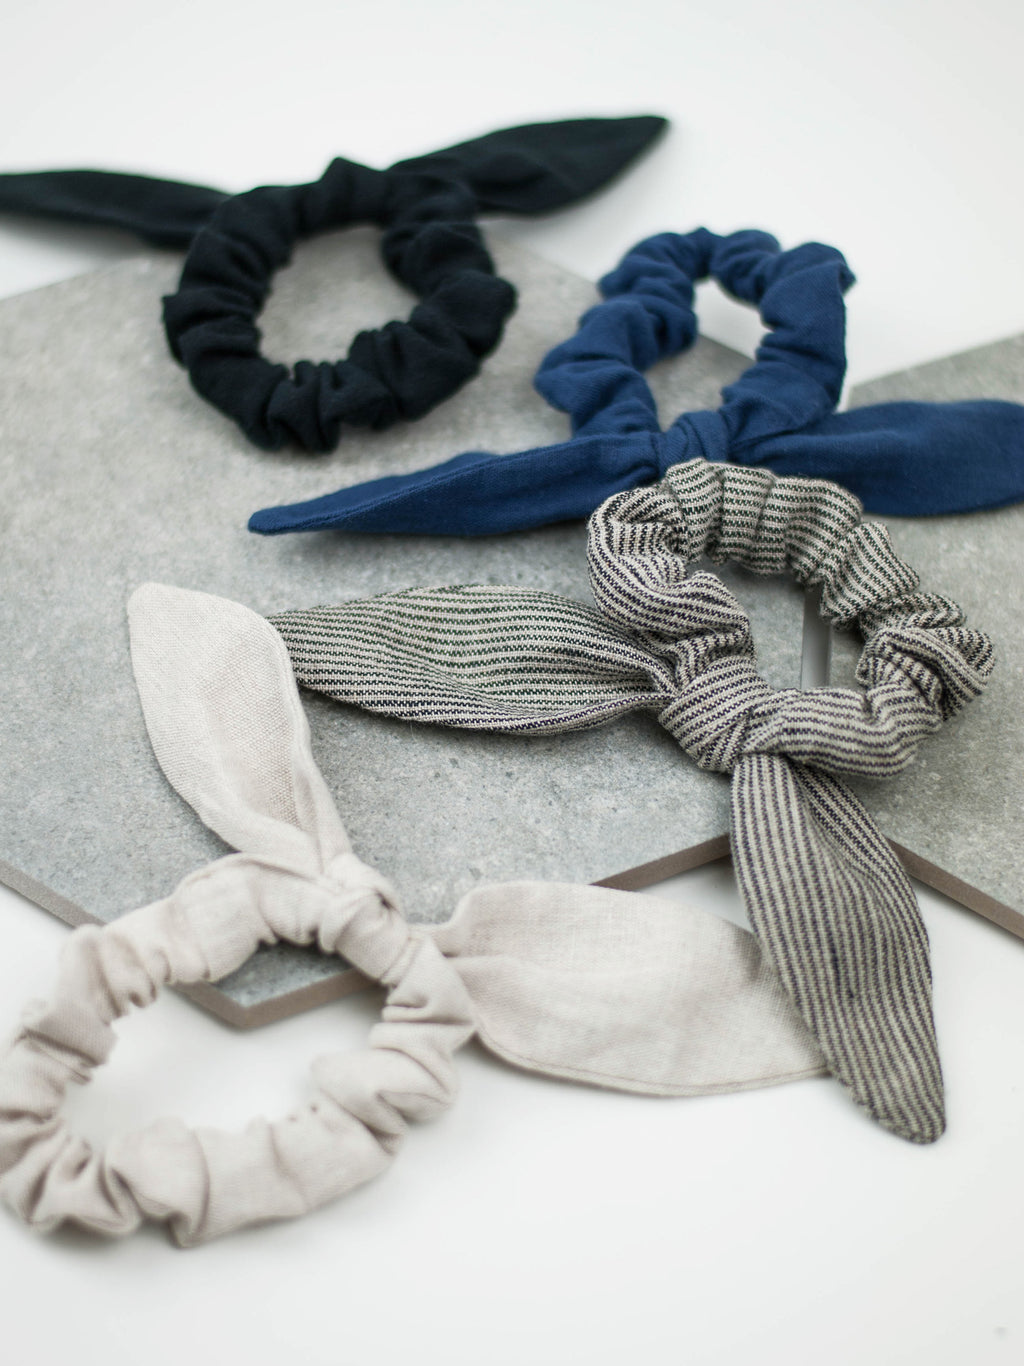 A classic scrunchie with a bow made from our offcut fabrics.